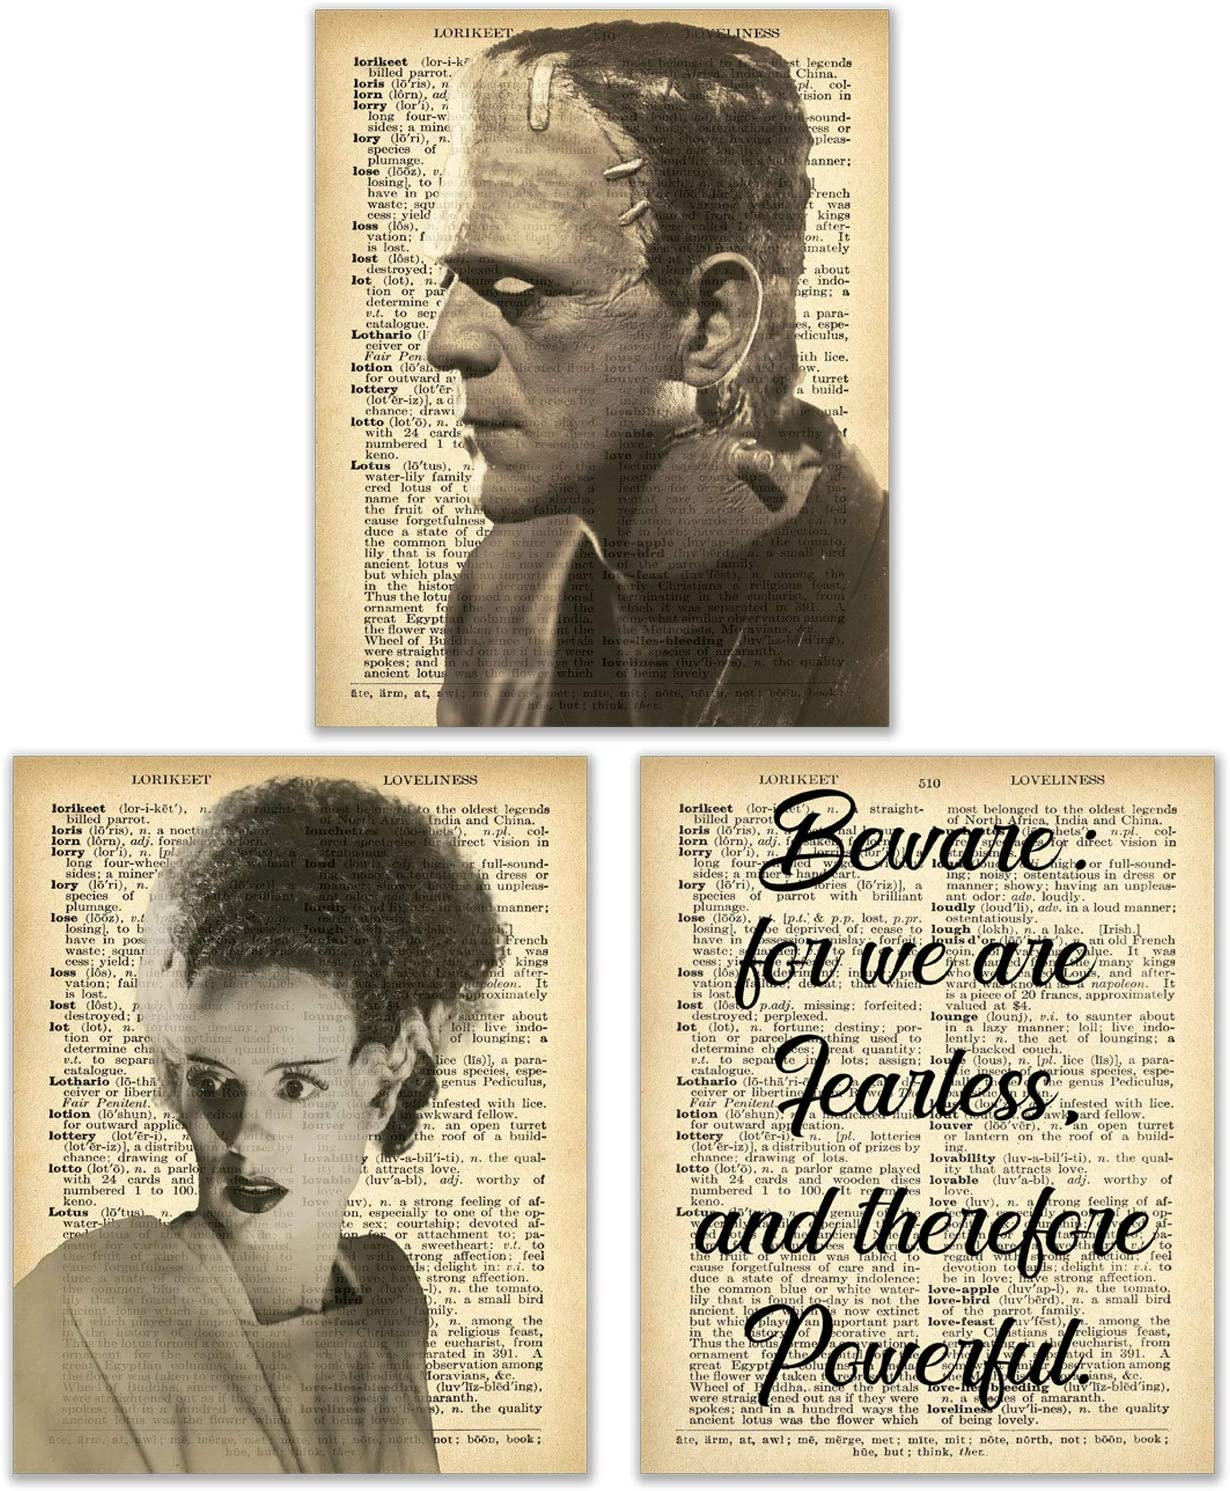 Frankenstein's Monster and Bride of Frankenstein - Set of 3 (8 inches x 10 inches)